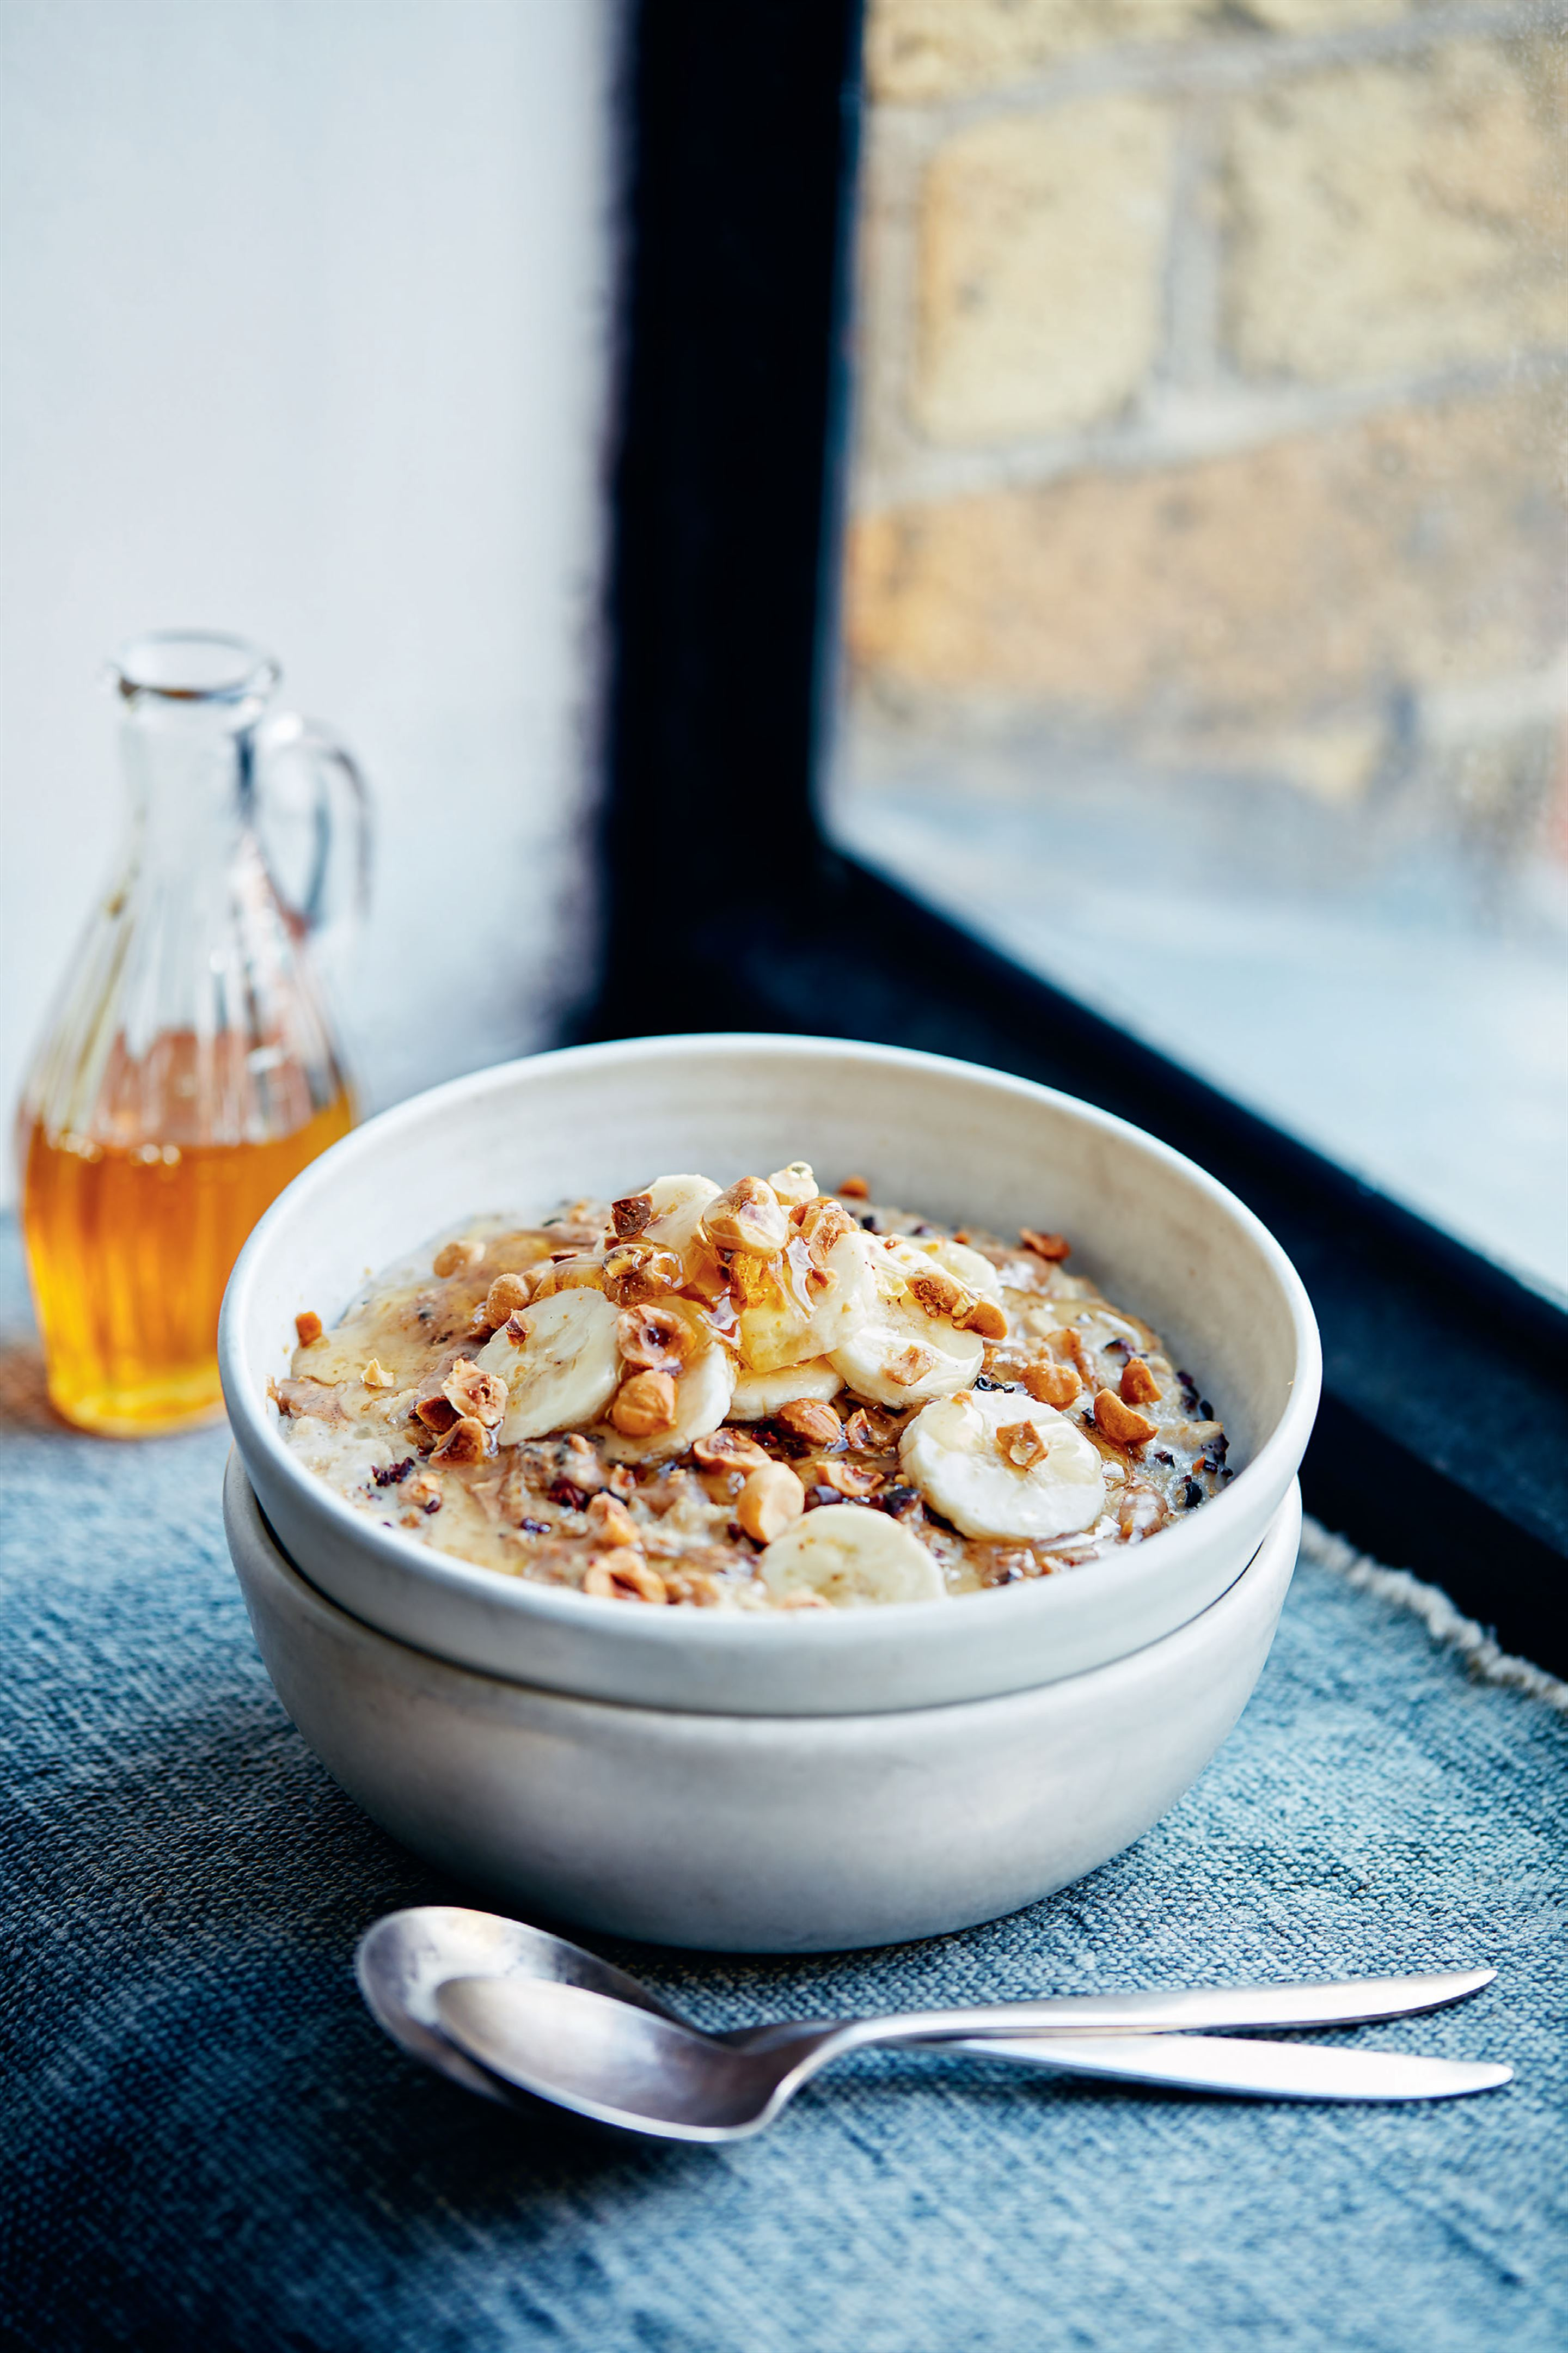 Cacao, hazelnut and banana porridge